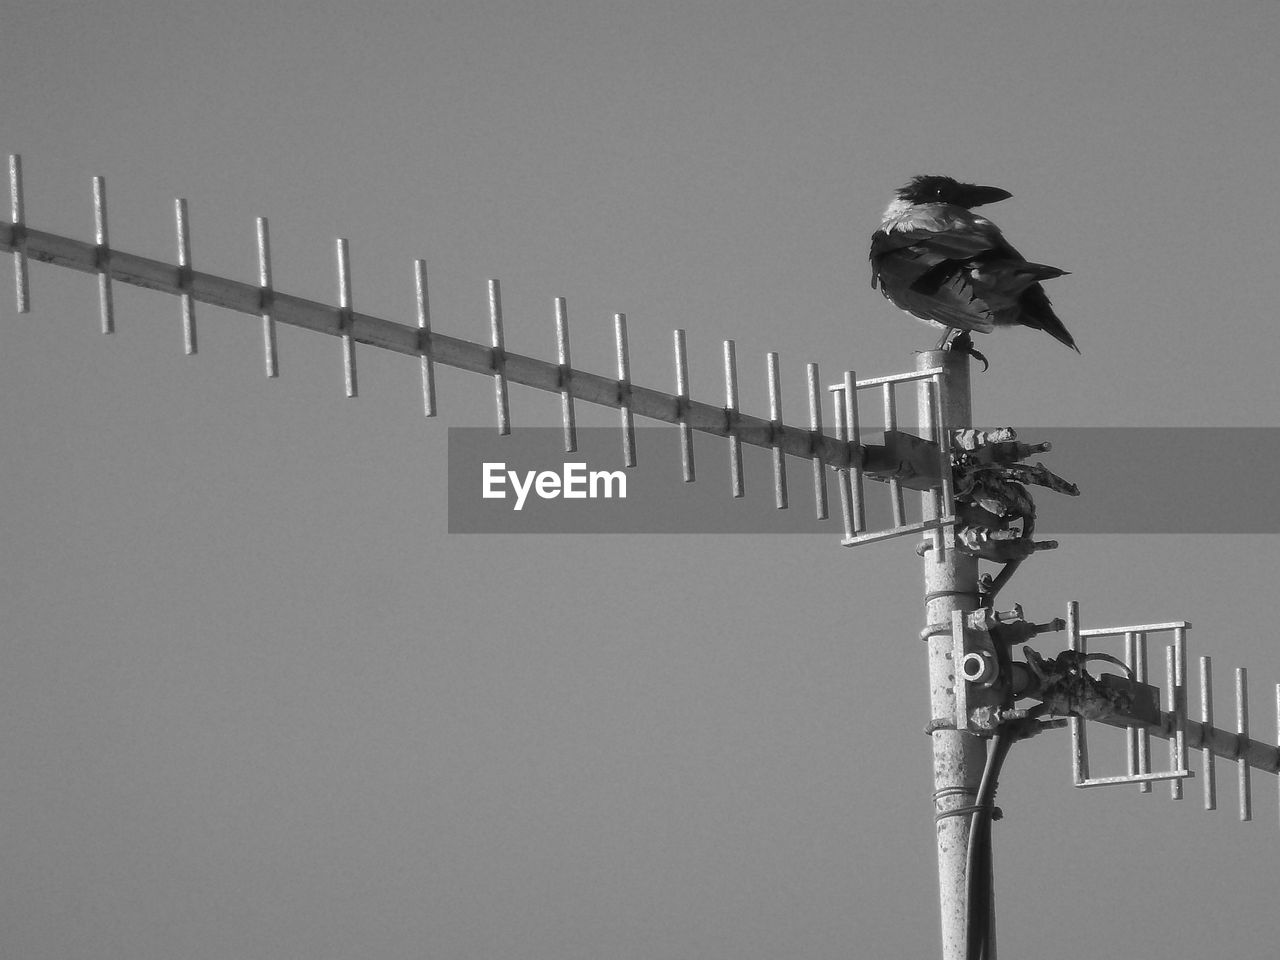 HIGH ANGLE VIEW OF BIRD PERCHING ON POLE